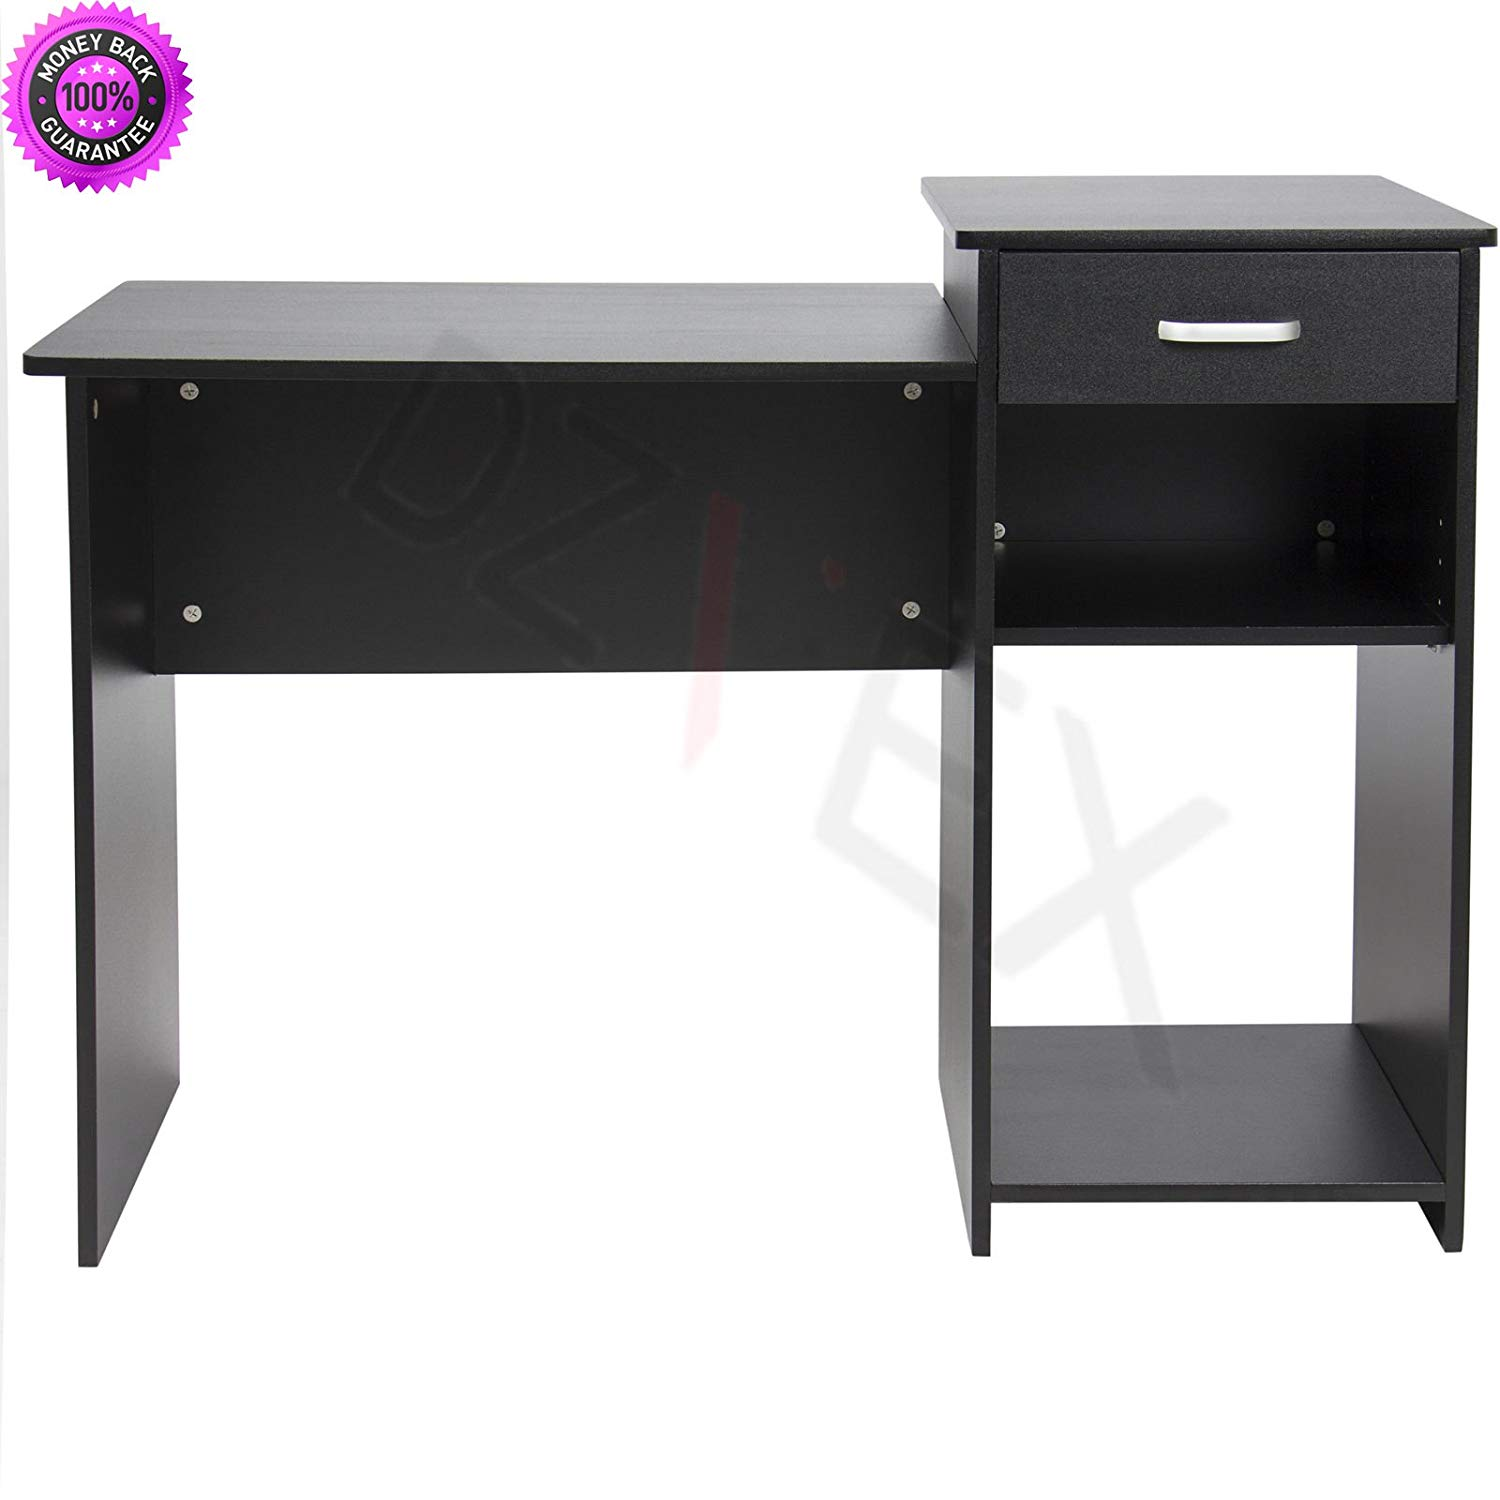 DzVeX_Student Computer Desk Home Office Wood Laptop Table Workstation Dorm - Black This desk will comfortably fit in your dorm room, office, or home. It is the perfect work desk to focus and finish